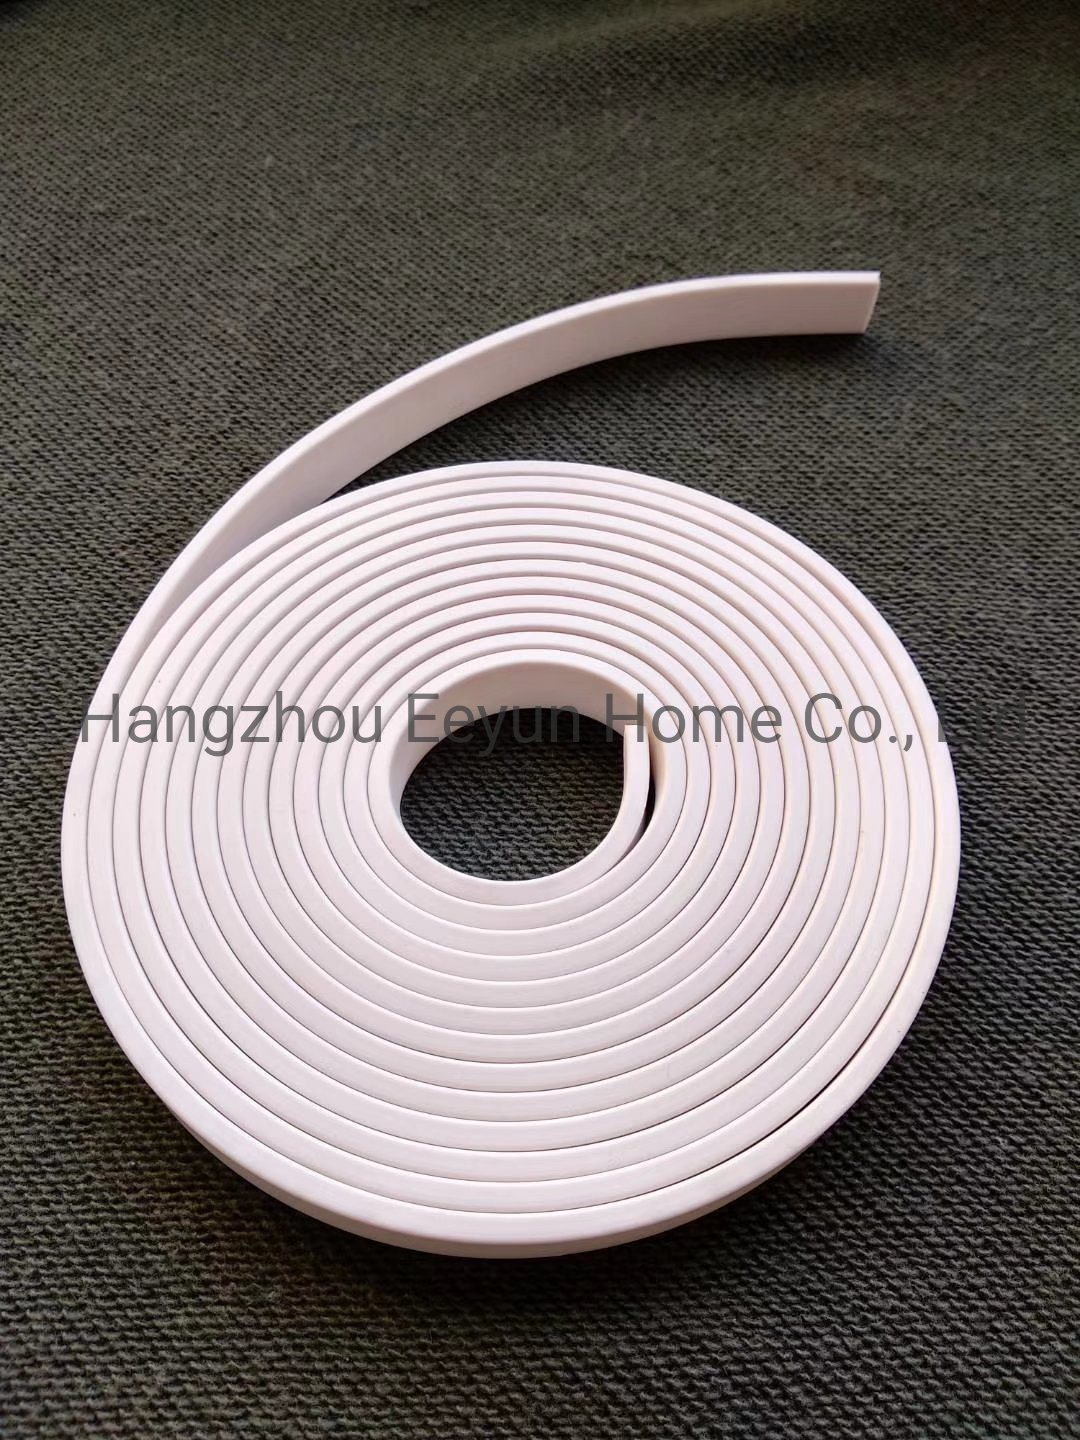 Flexible Waterproof Non-slip Silicone Rubber Solid Sealing Strip Gasket Square